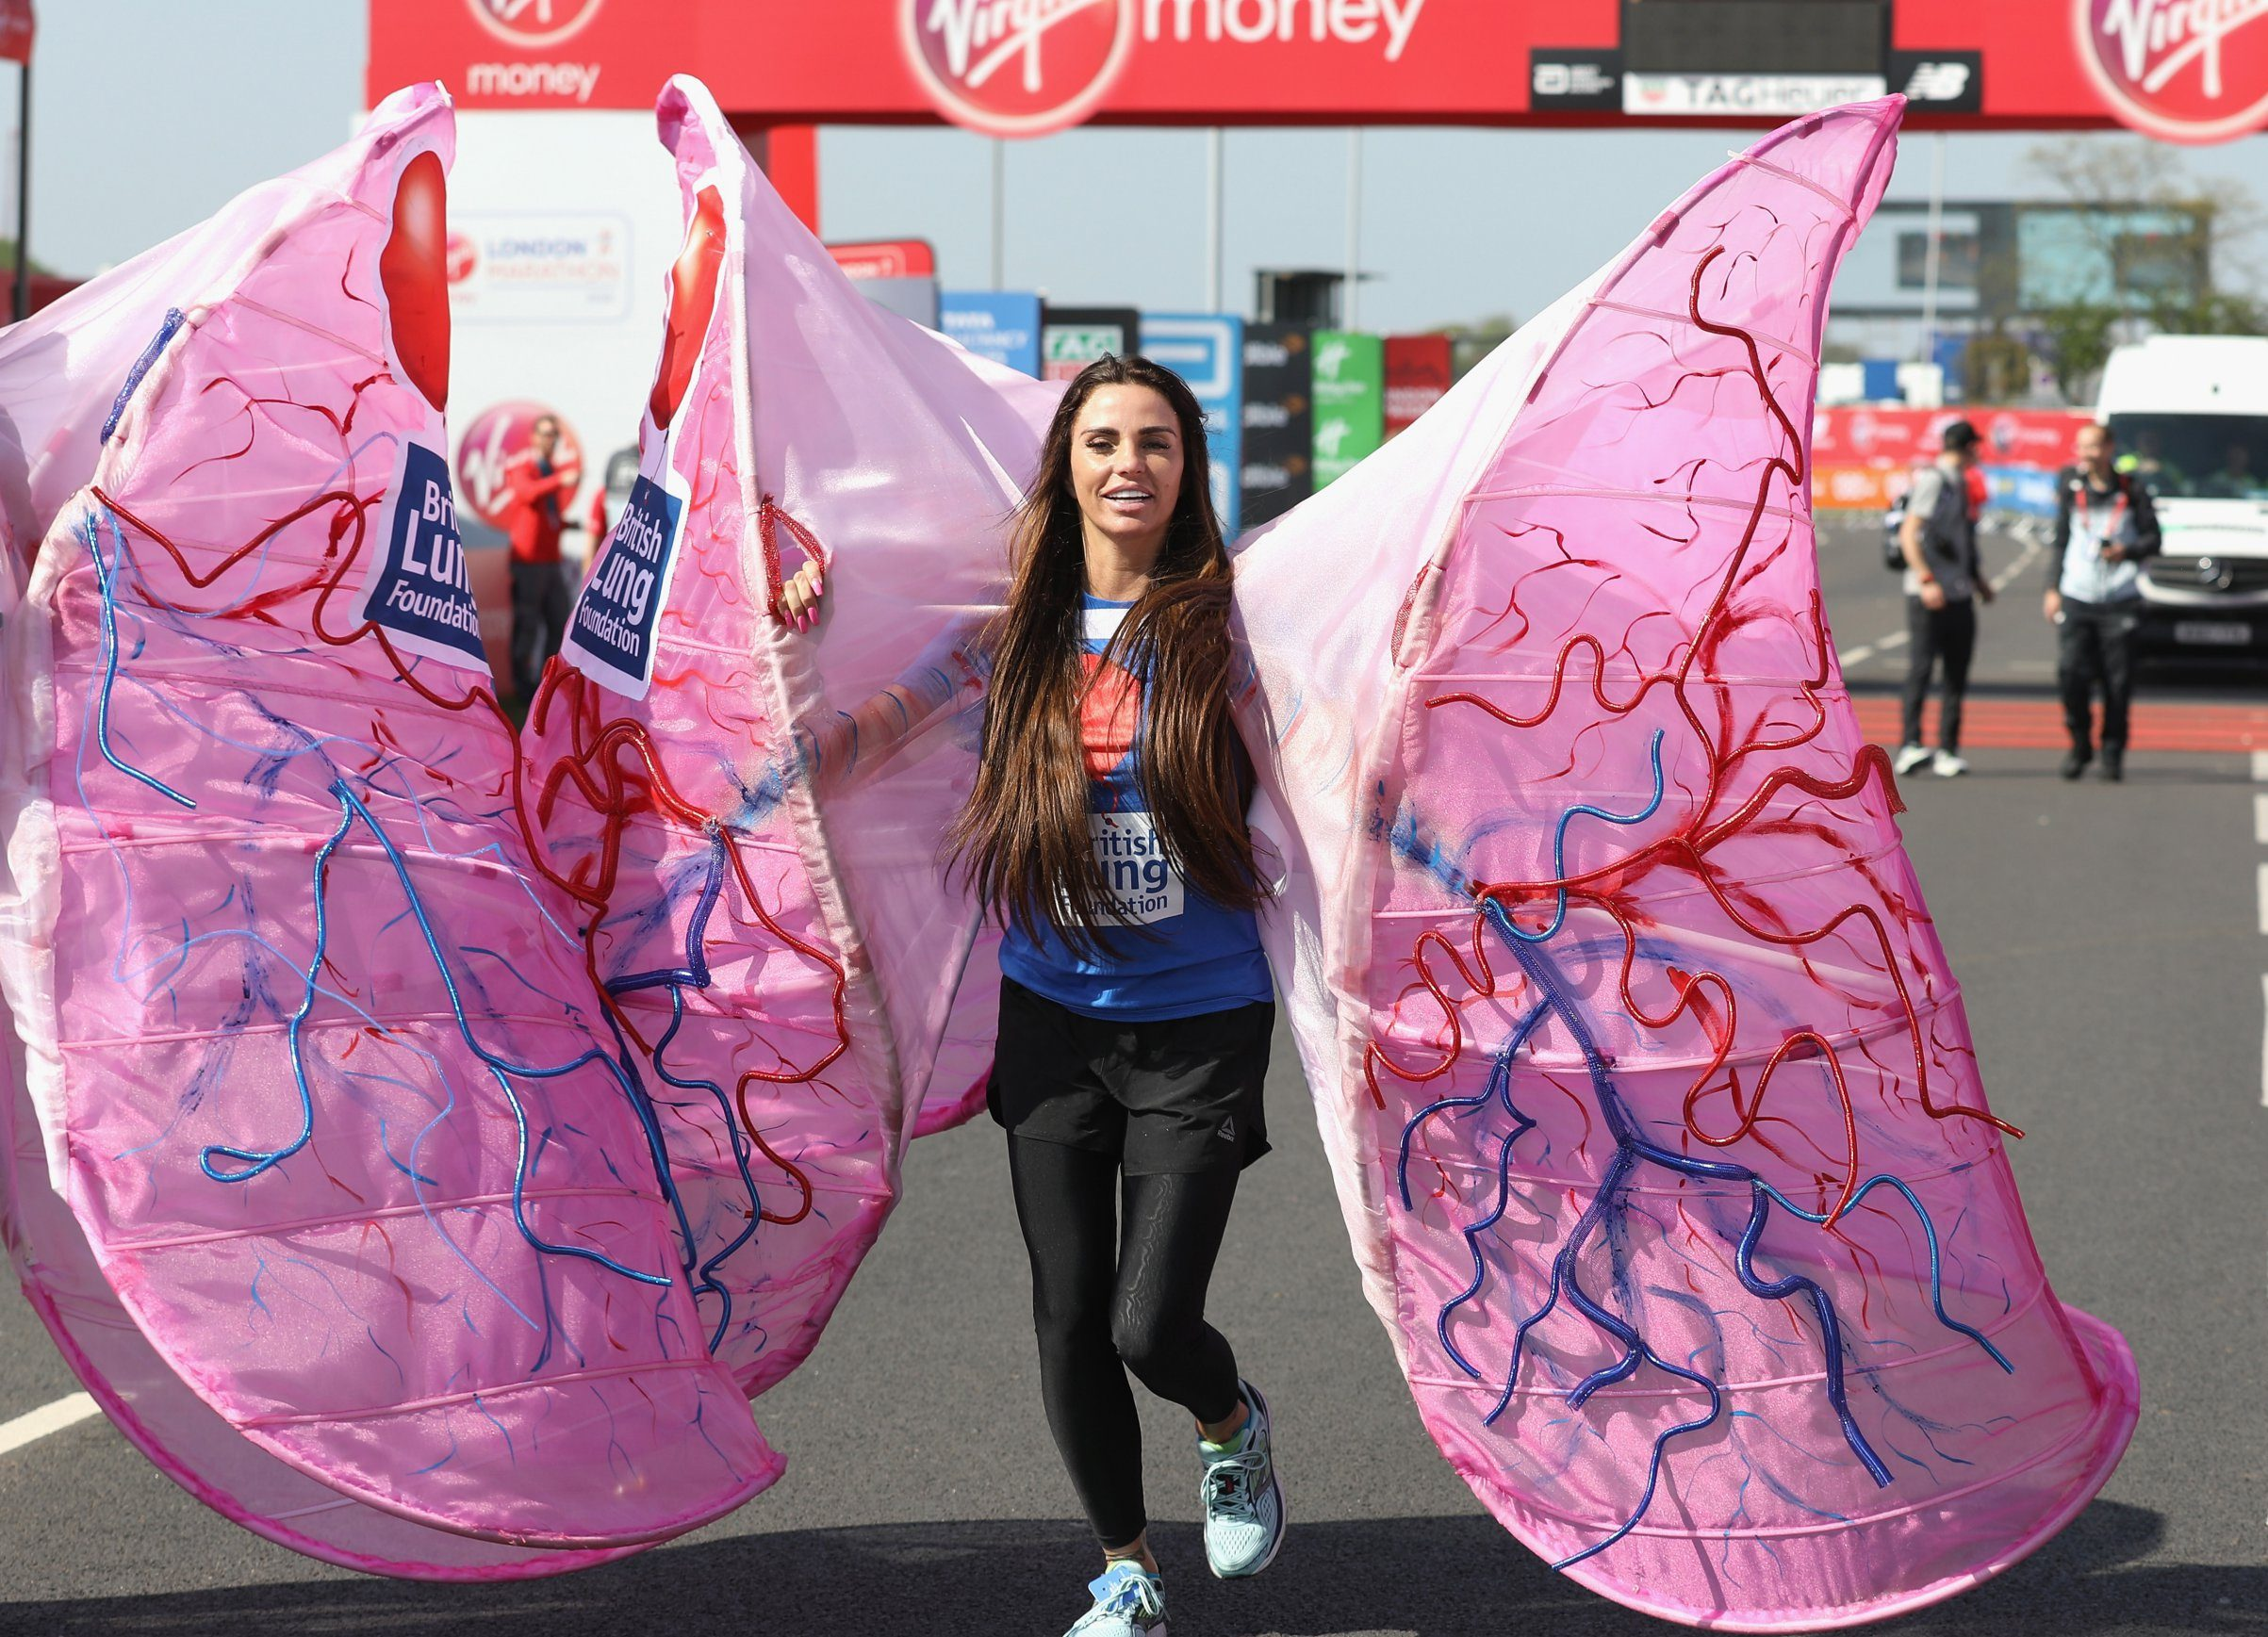 Katie Price starts the 2018 London marathon dressed as a very large pair of lungs